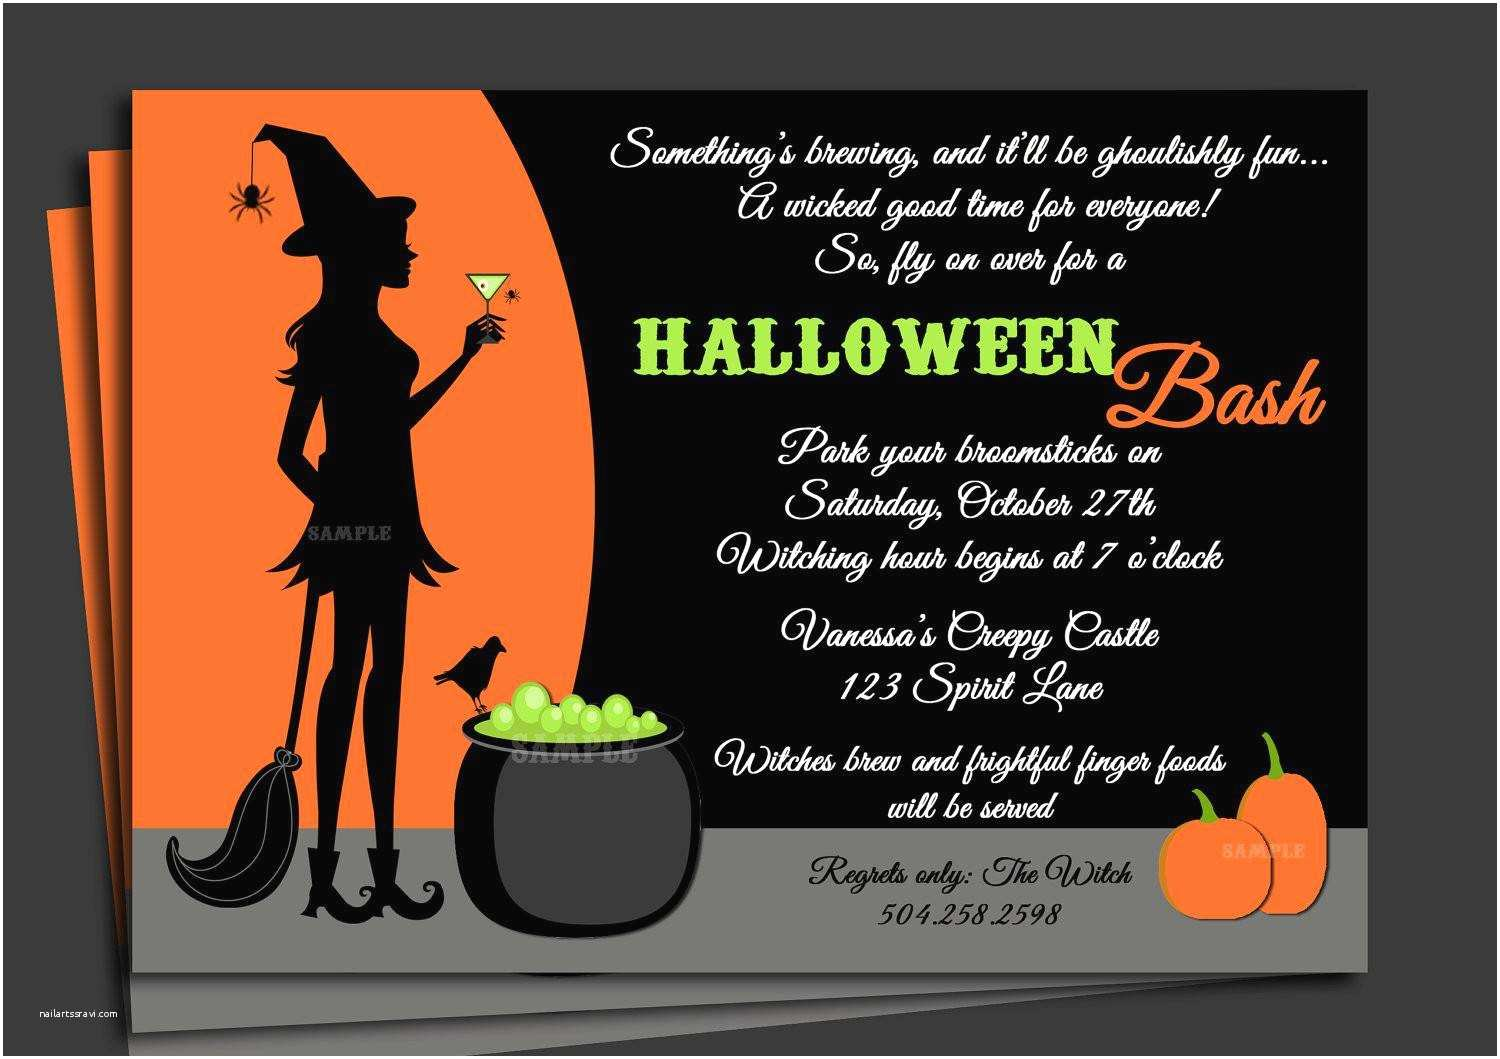 Invitation Wording for Adults Only Party Halloween Party Invitation Ideas